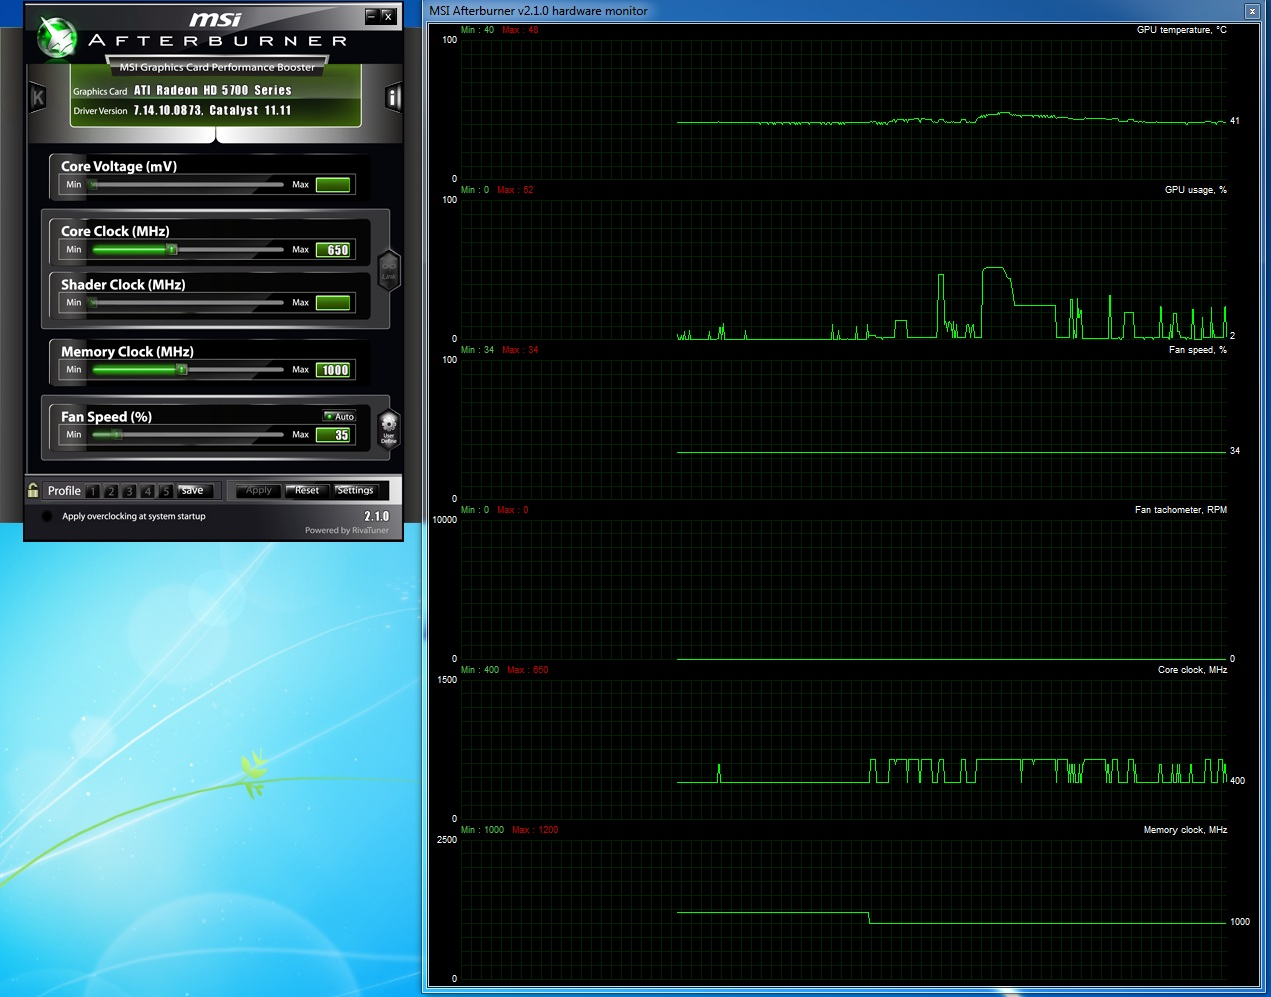 GPU activity drops to 0% while gaming - Overclock net - An